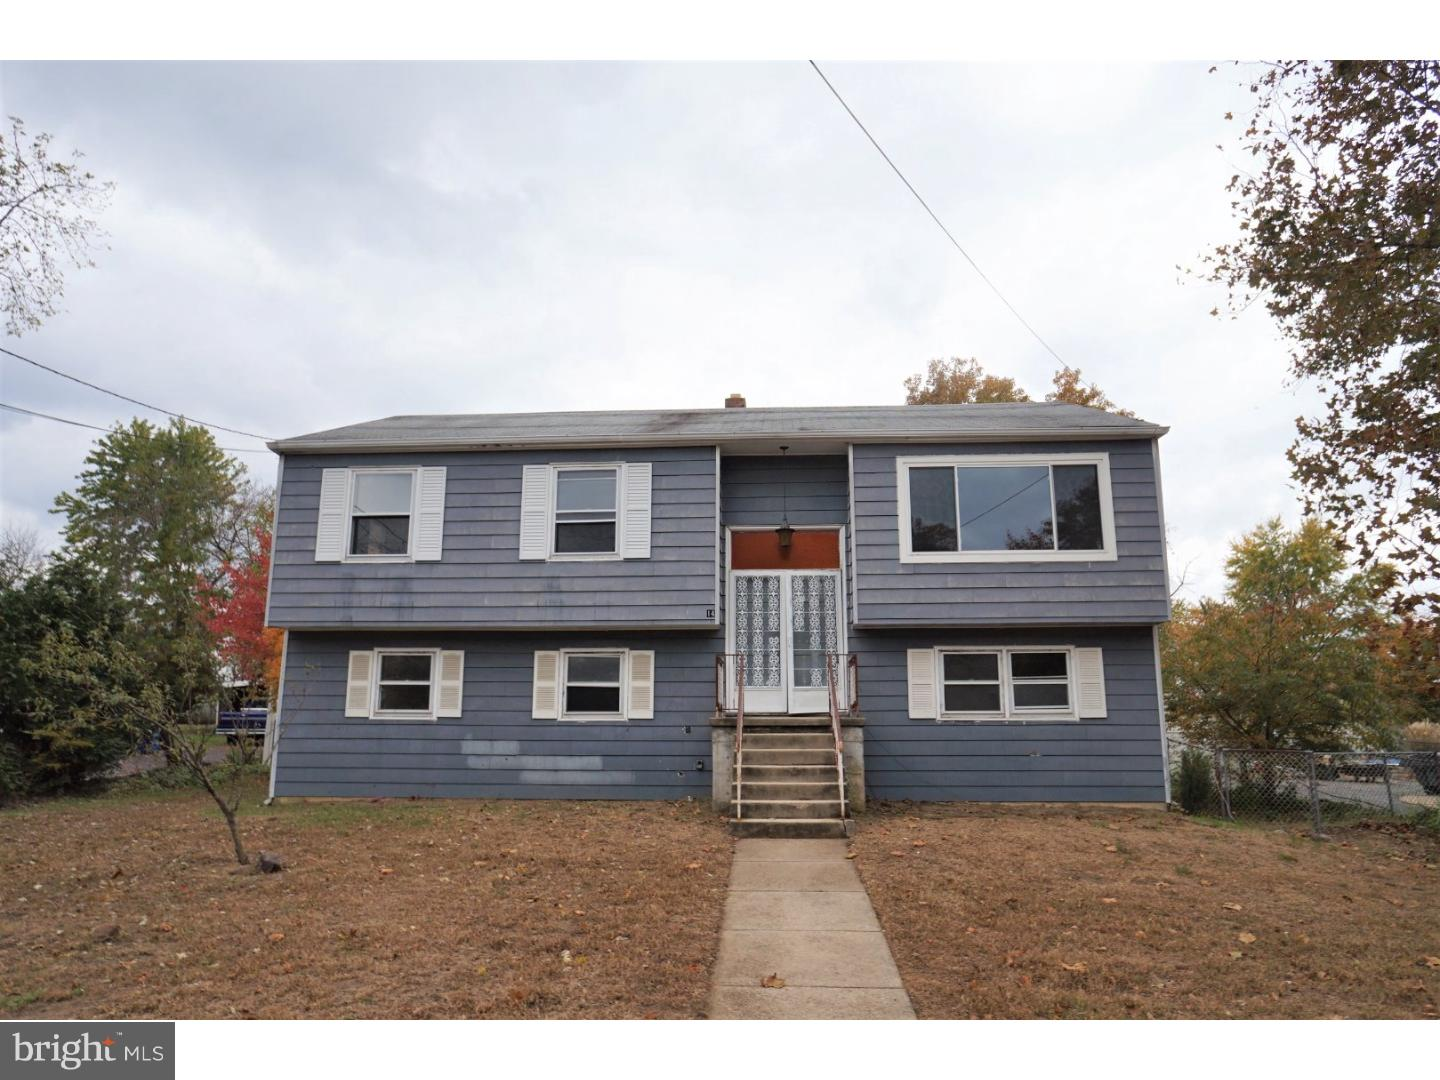 Single Family Home for Sale at 14 CENTER Street Delran Township, New Jersey 08075 United States